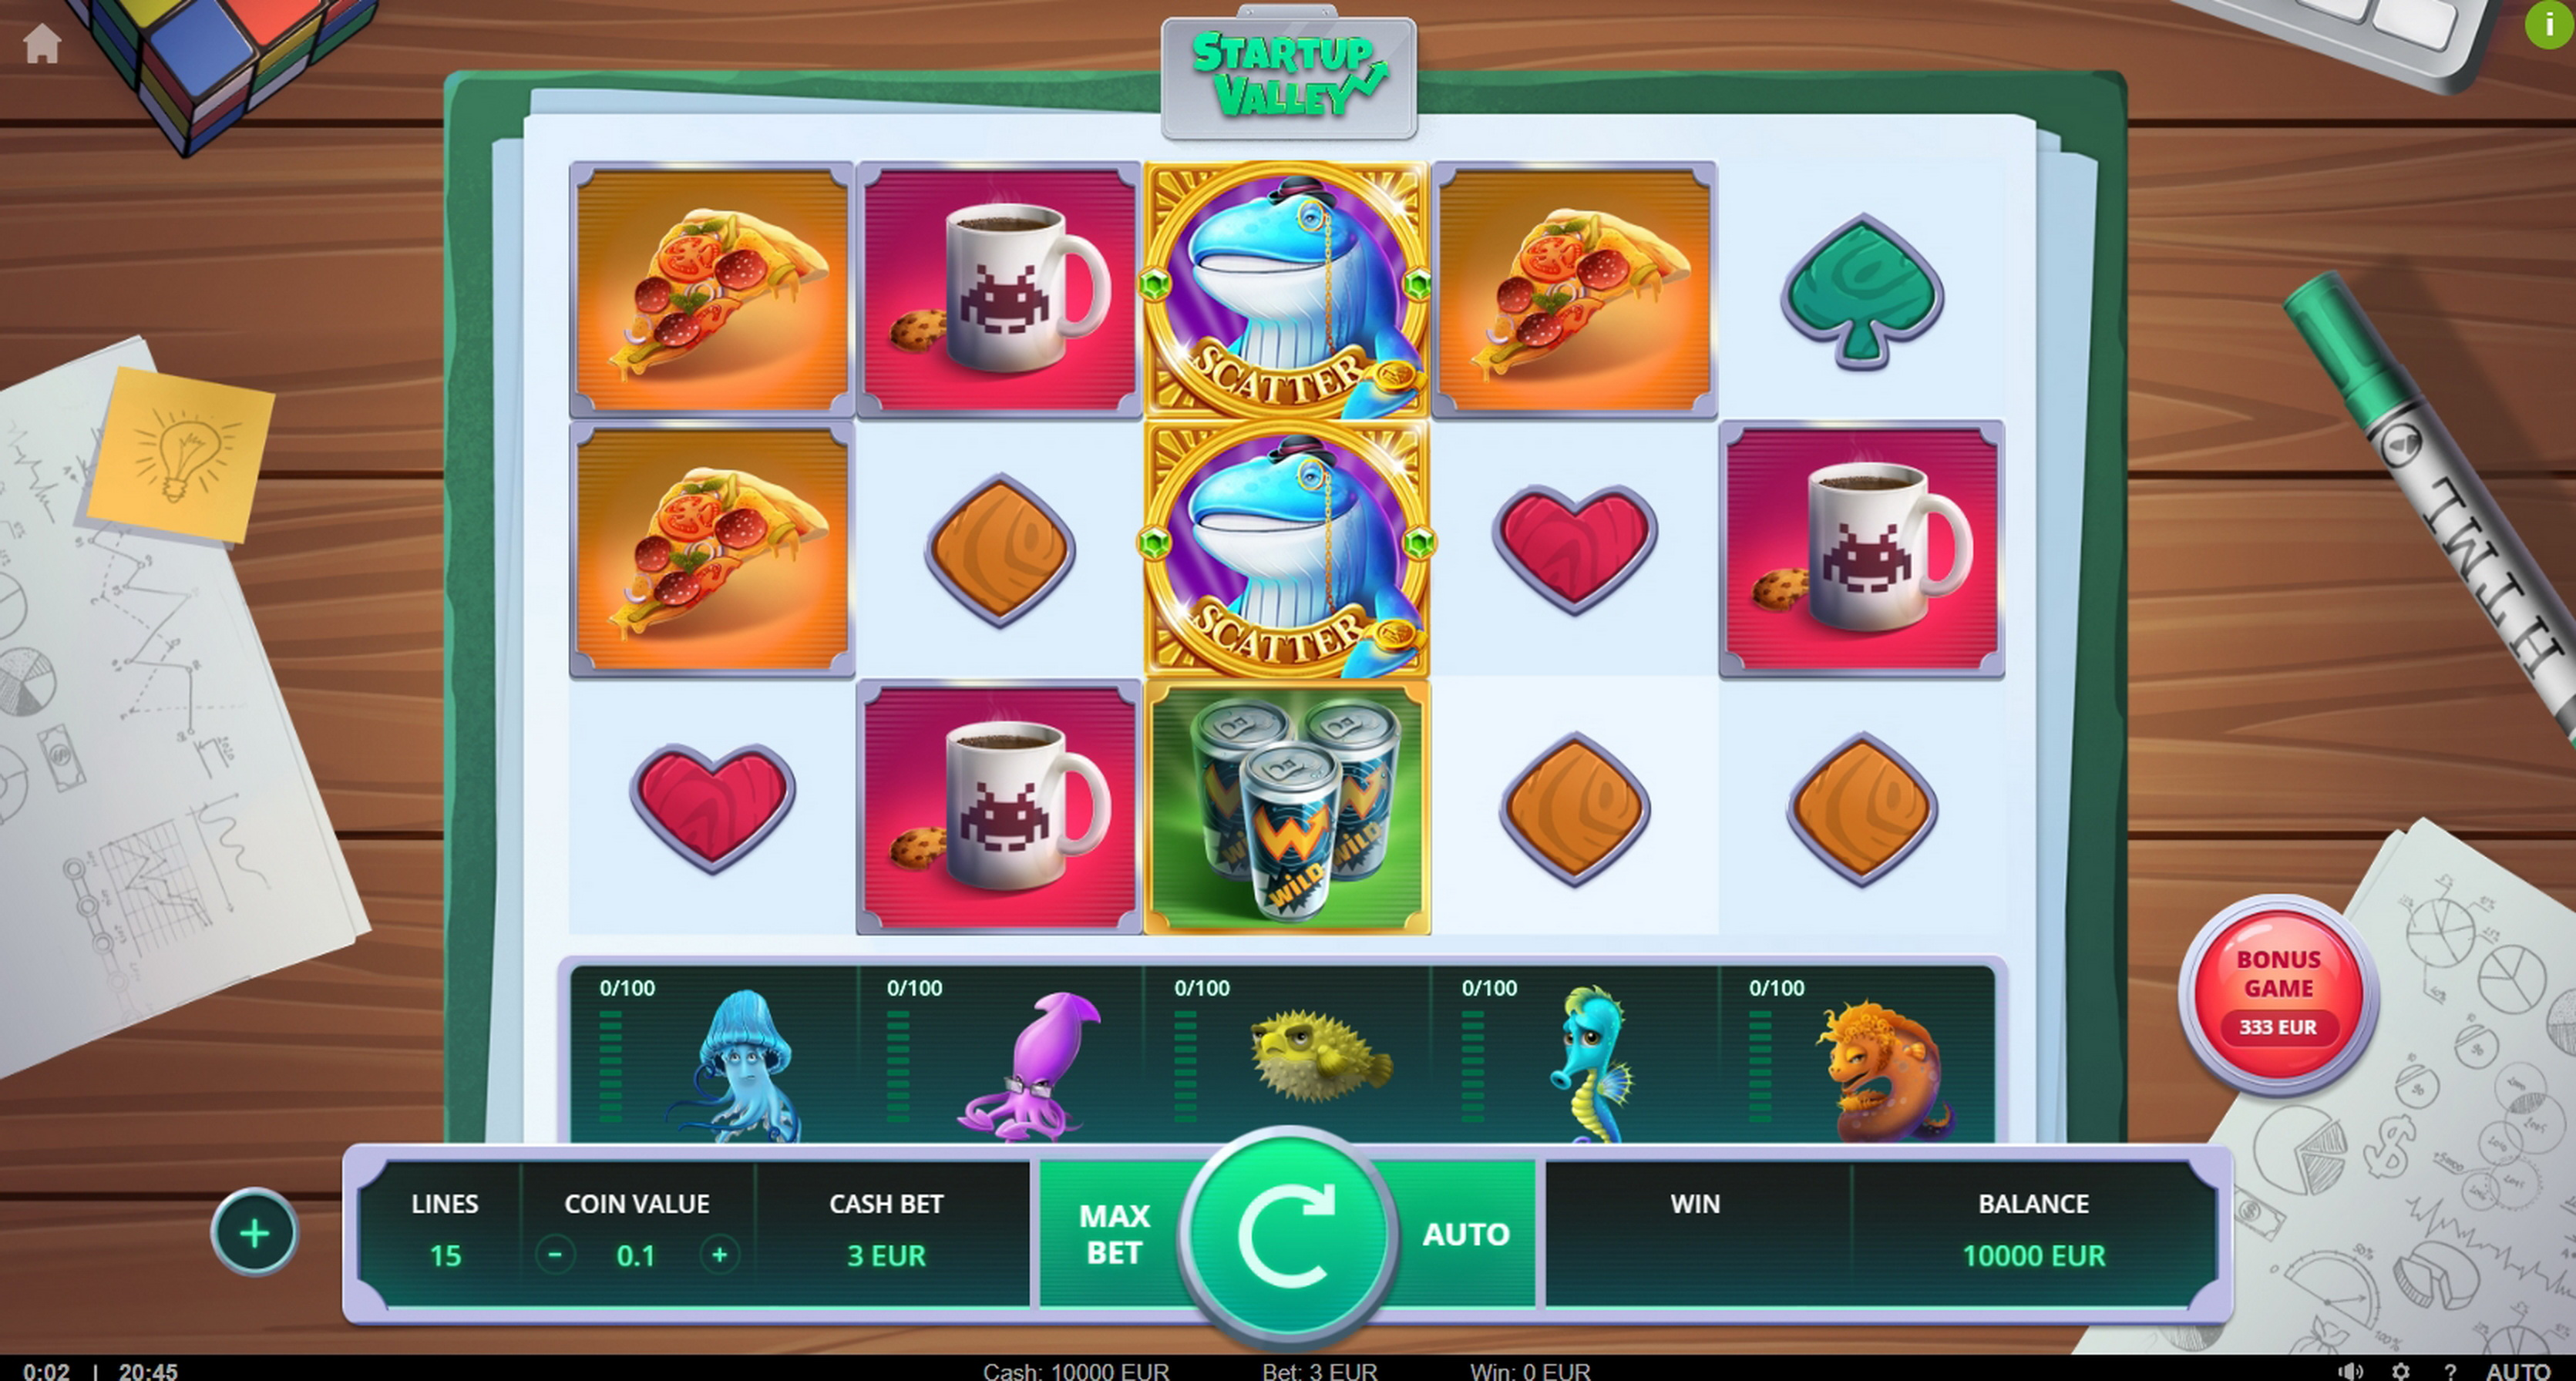 Reels in Startup Valley Slot Game by TrueLab Games